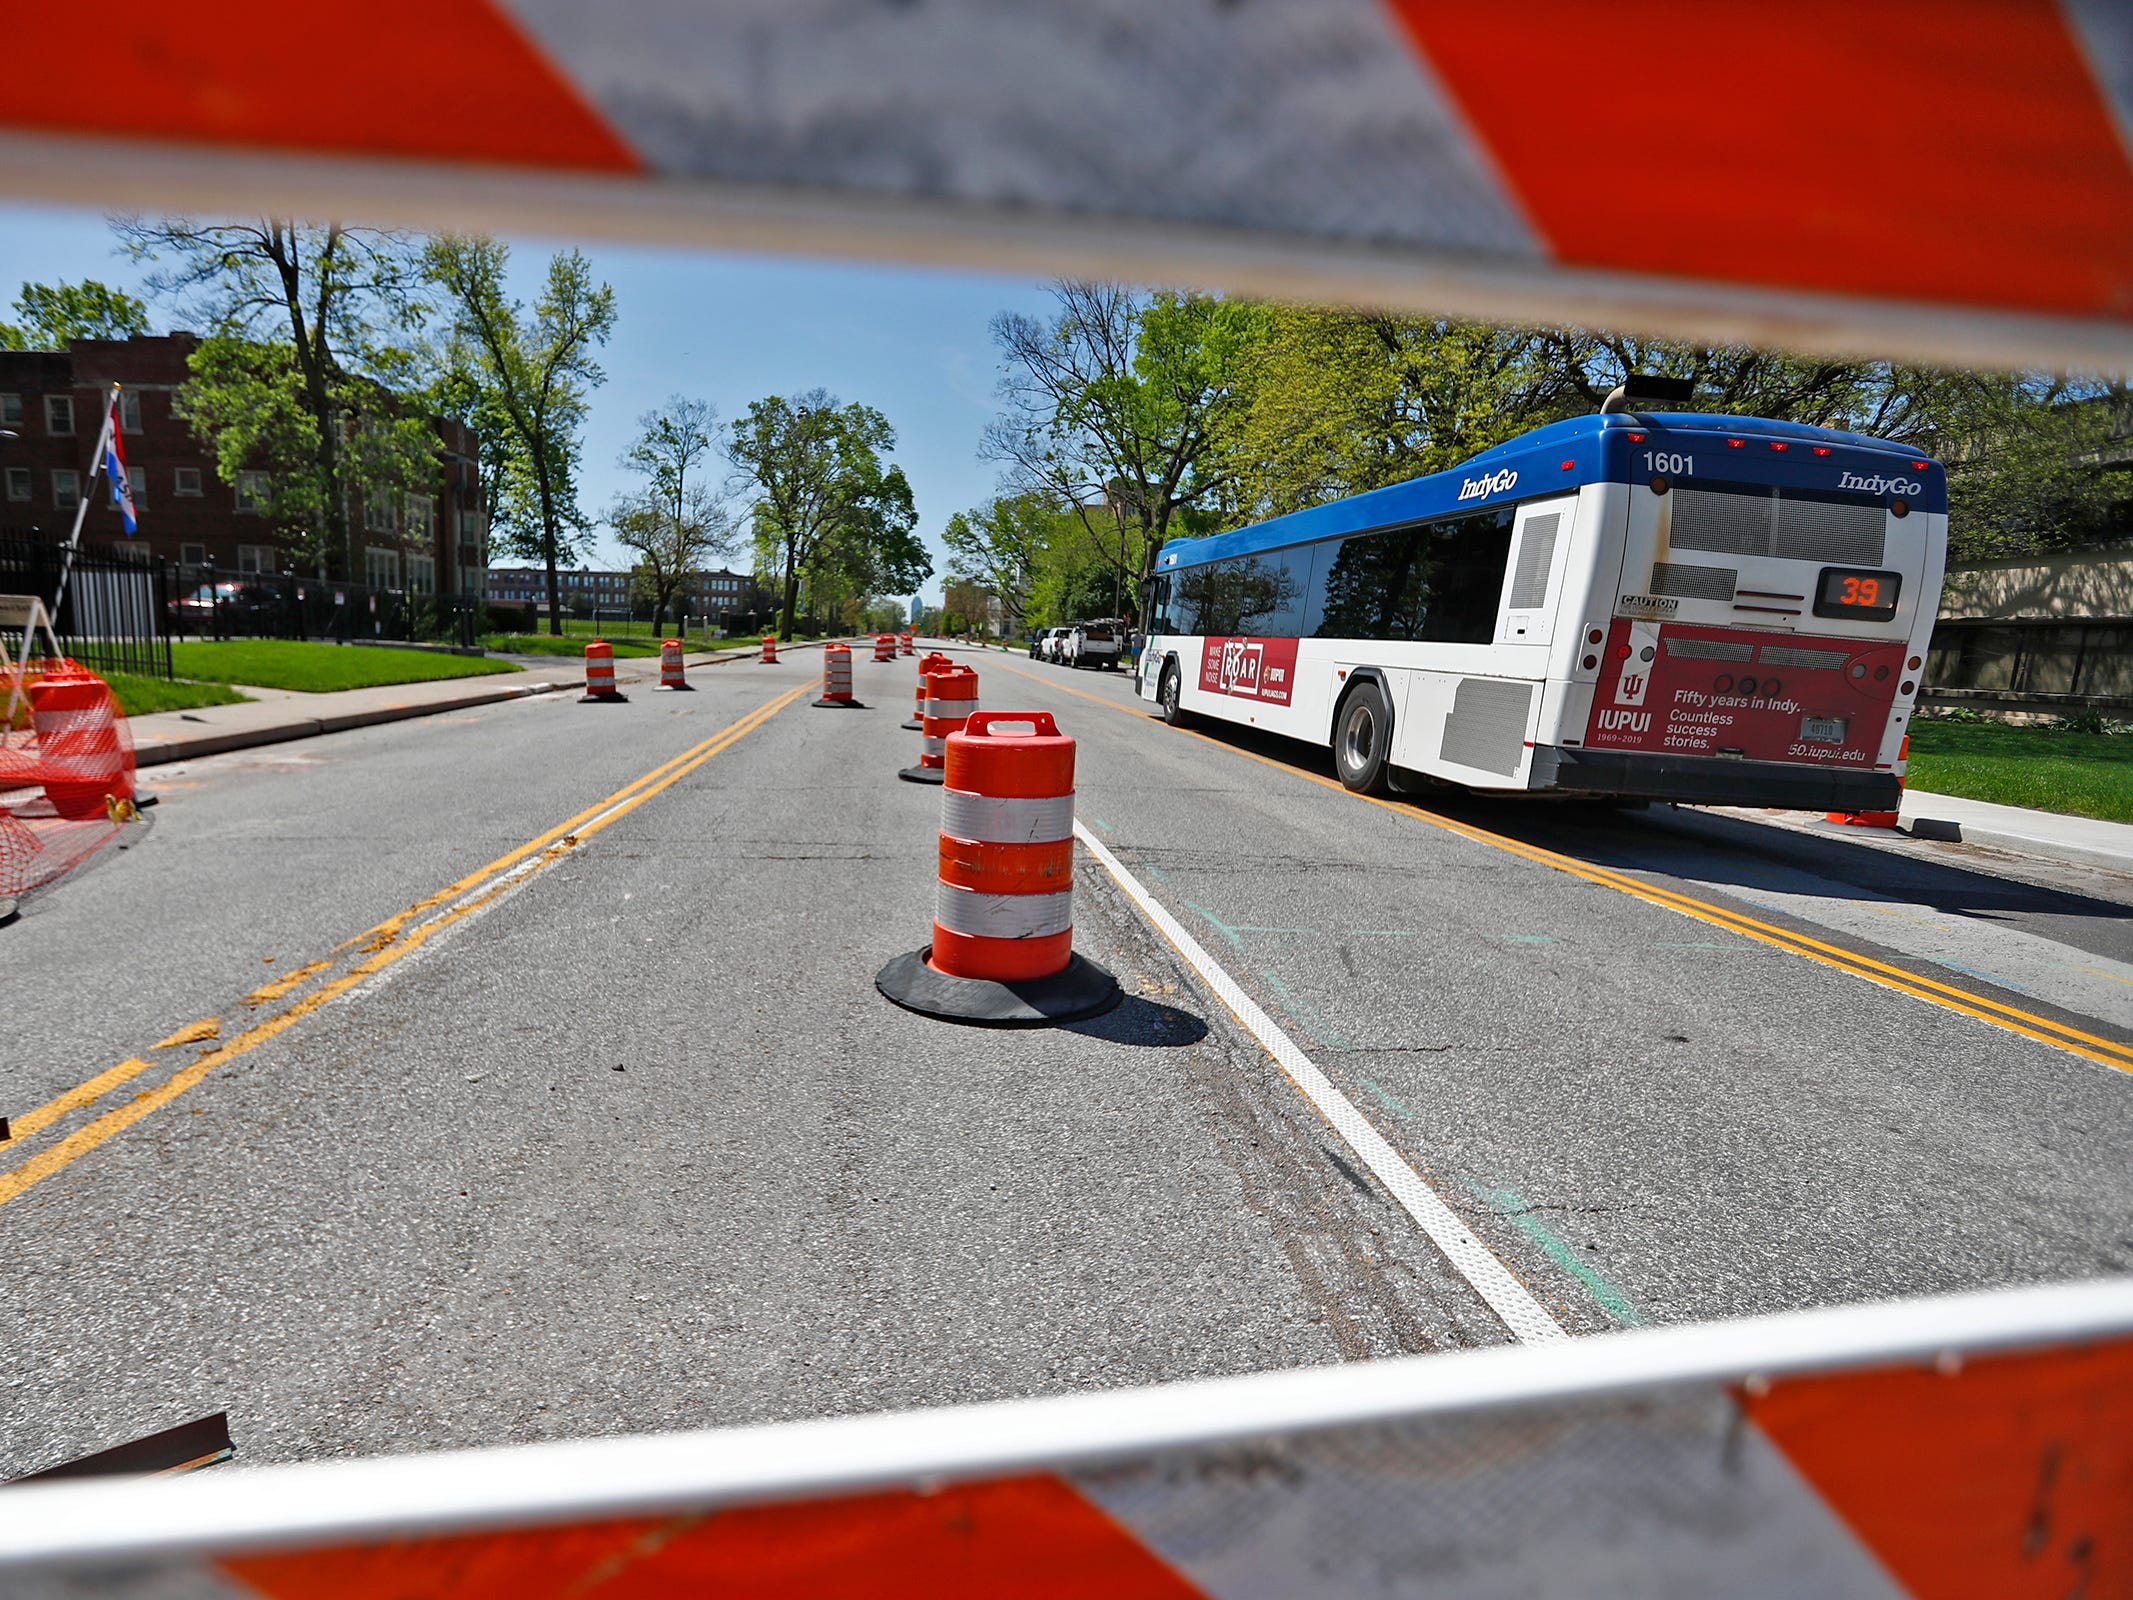 A bus heads south in the 3400 block of Meridian Street, Sunday, May 5, 2019.  The City has updated the timeline when the Red Line Bus Rapid Transit system should open, which is later in 2019 summer.